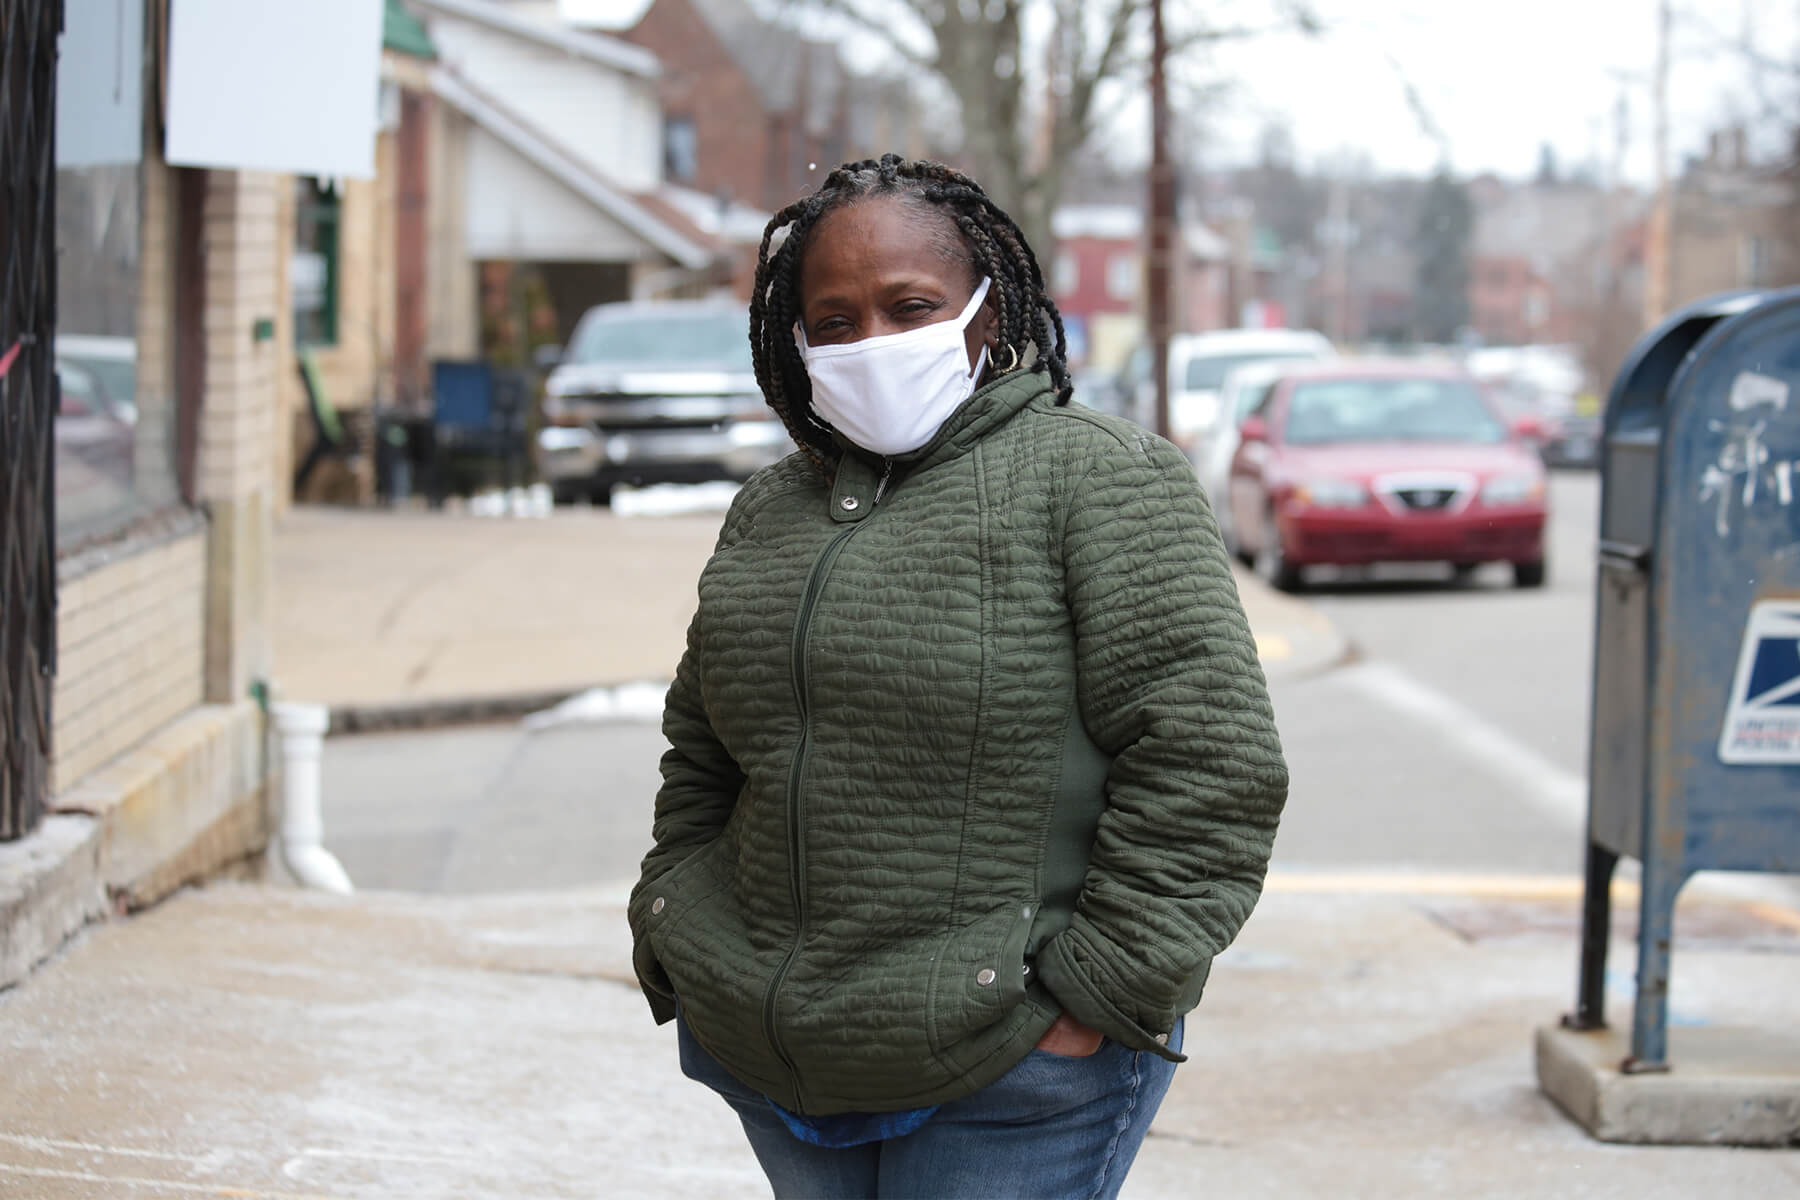 Laura W., outside her home in Carrick. (Photo by Ryan Loew/PublicSource)